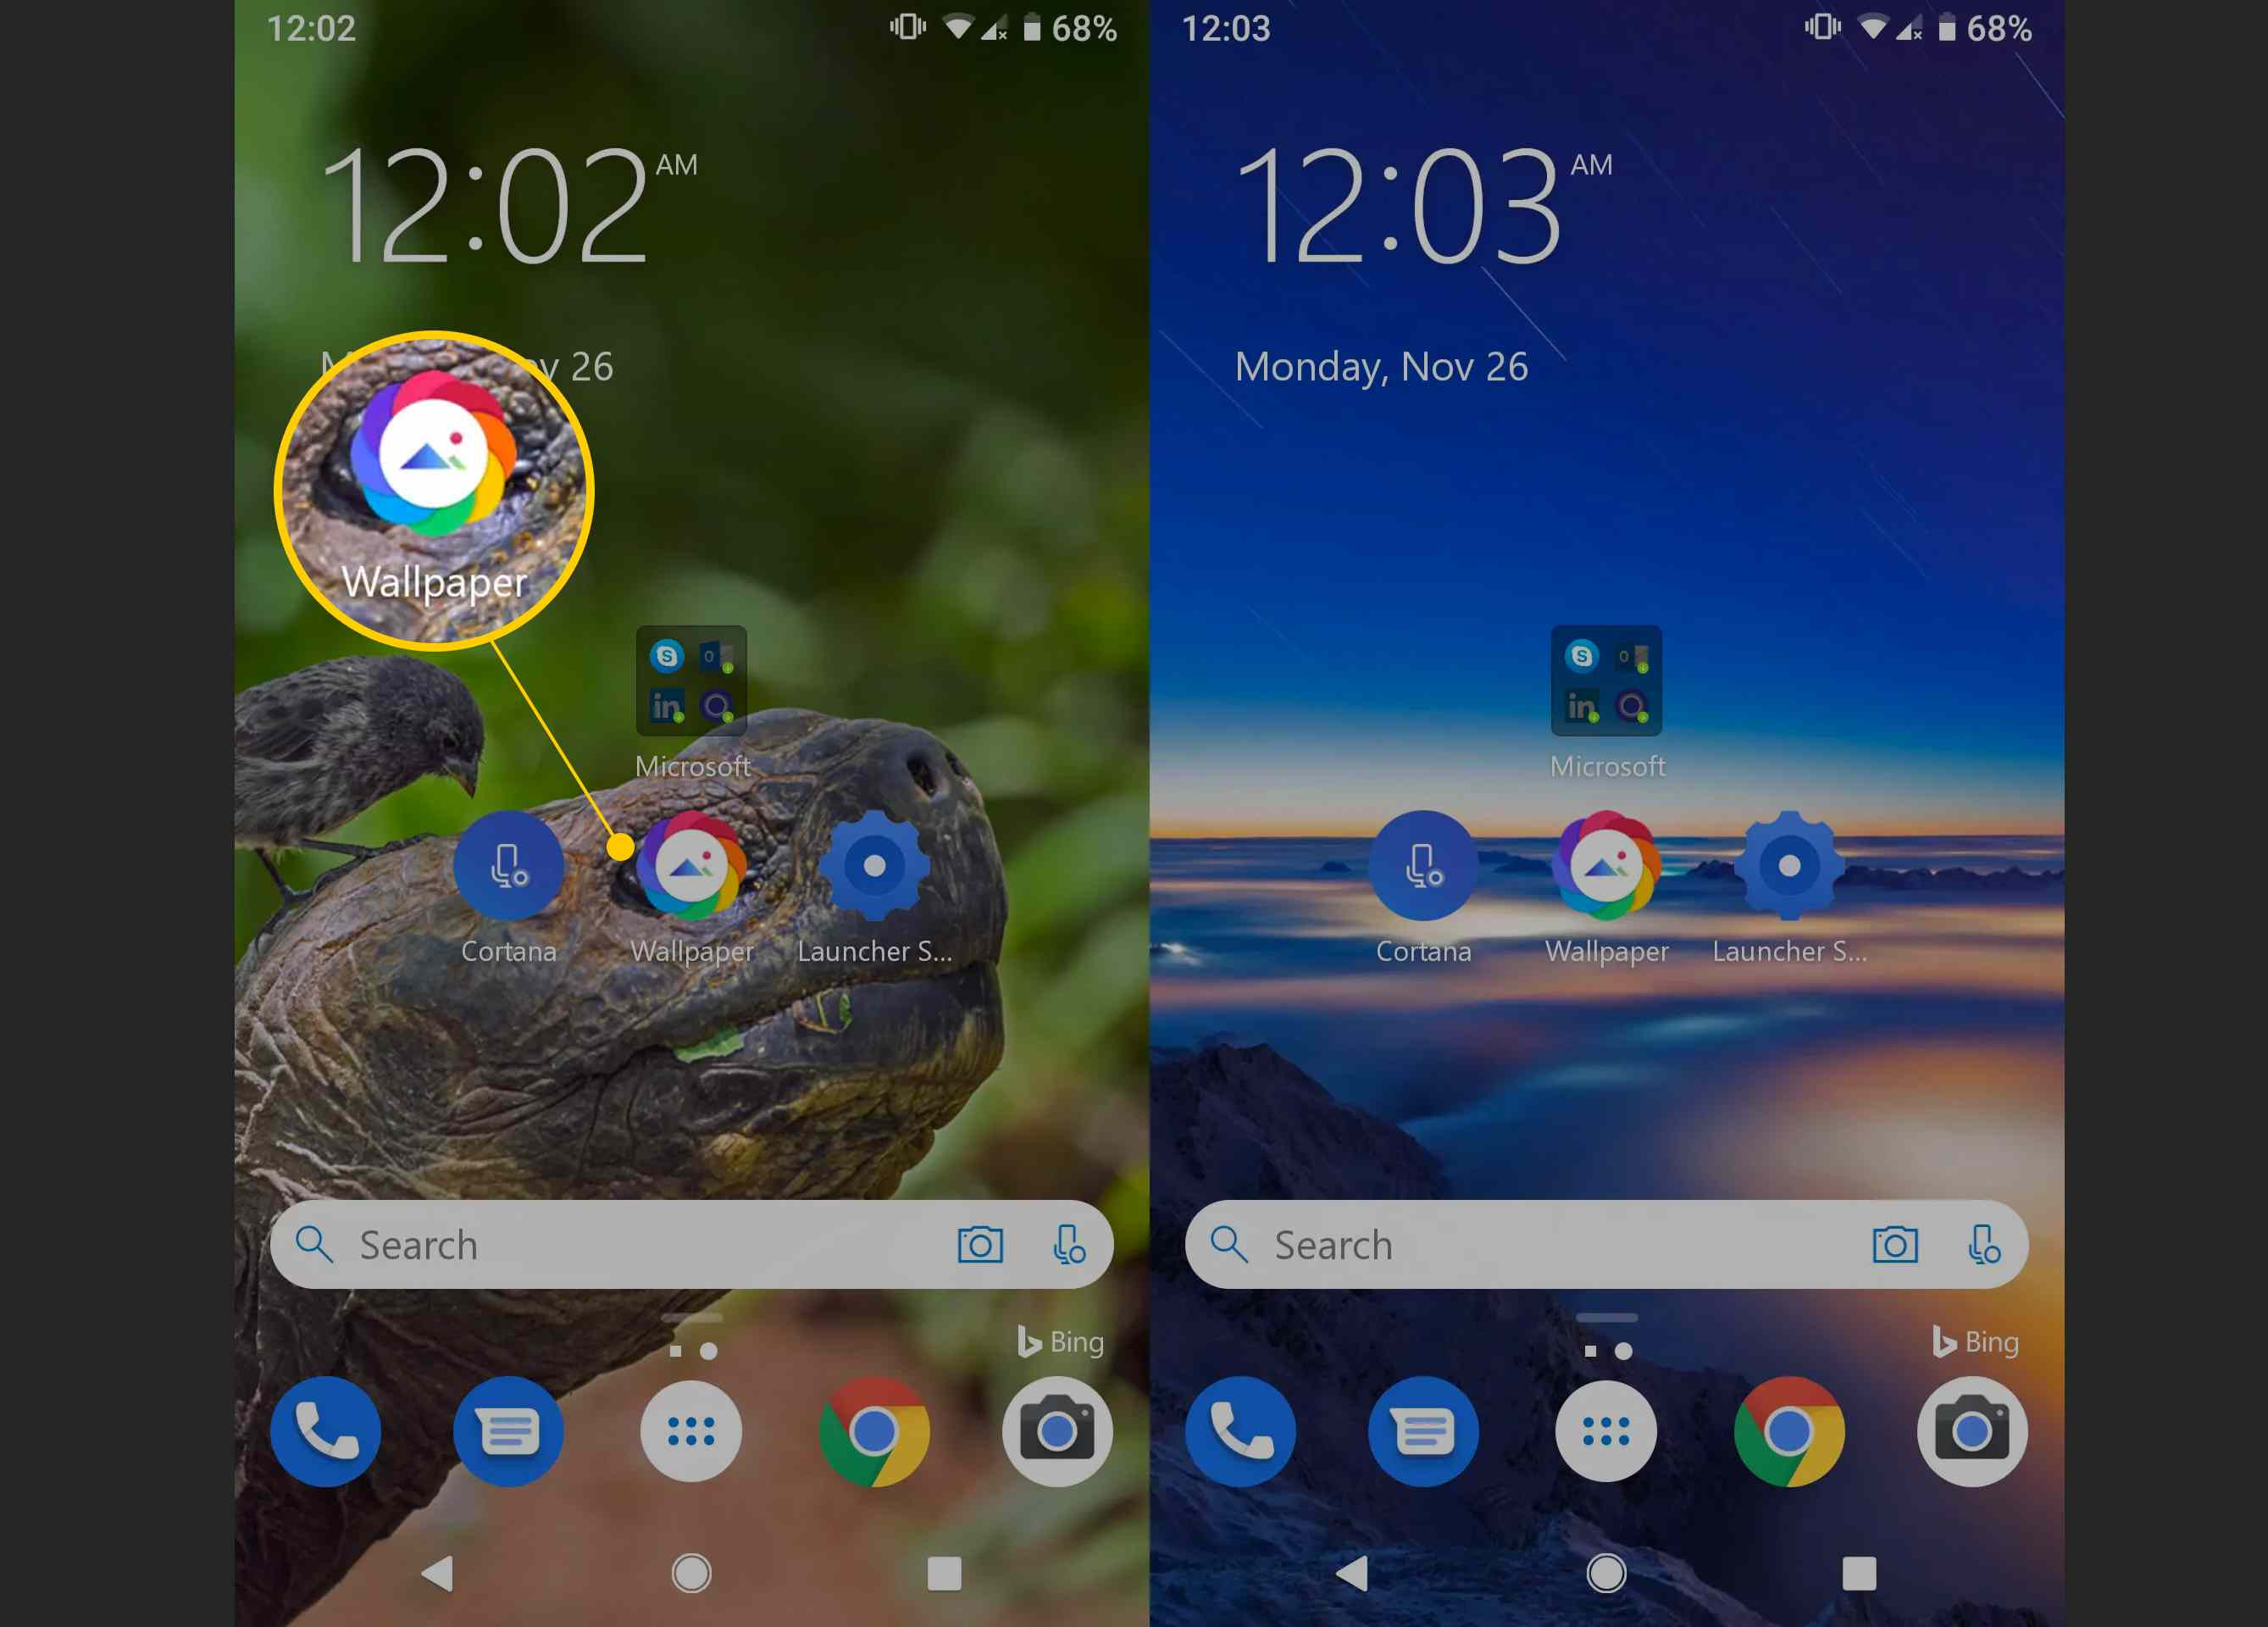 How to Get Windows 10 for Android